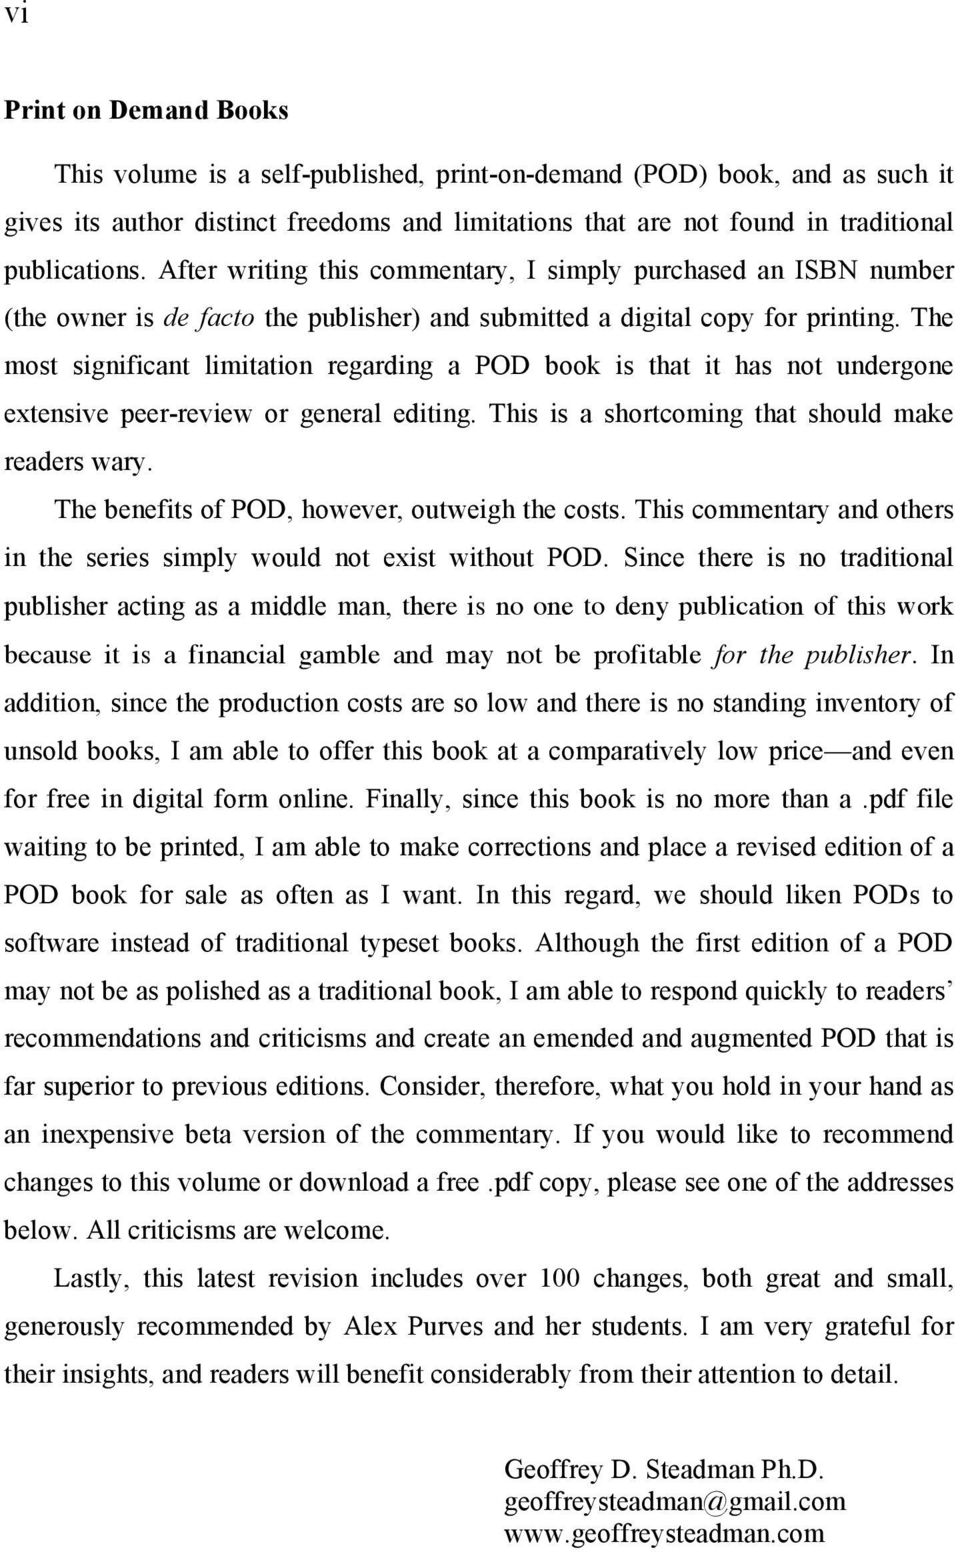 The most significant limitation regarding a POD book is that it has not undergone extensive peer-review or general editing. This is a shortcoming that should make readers wary.